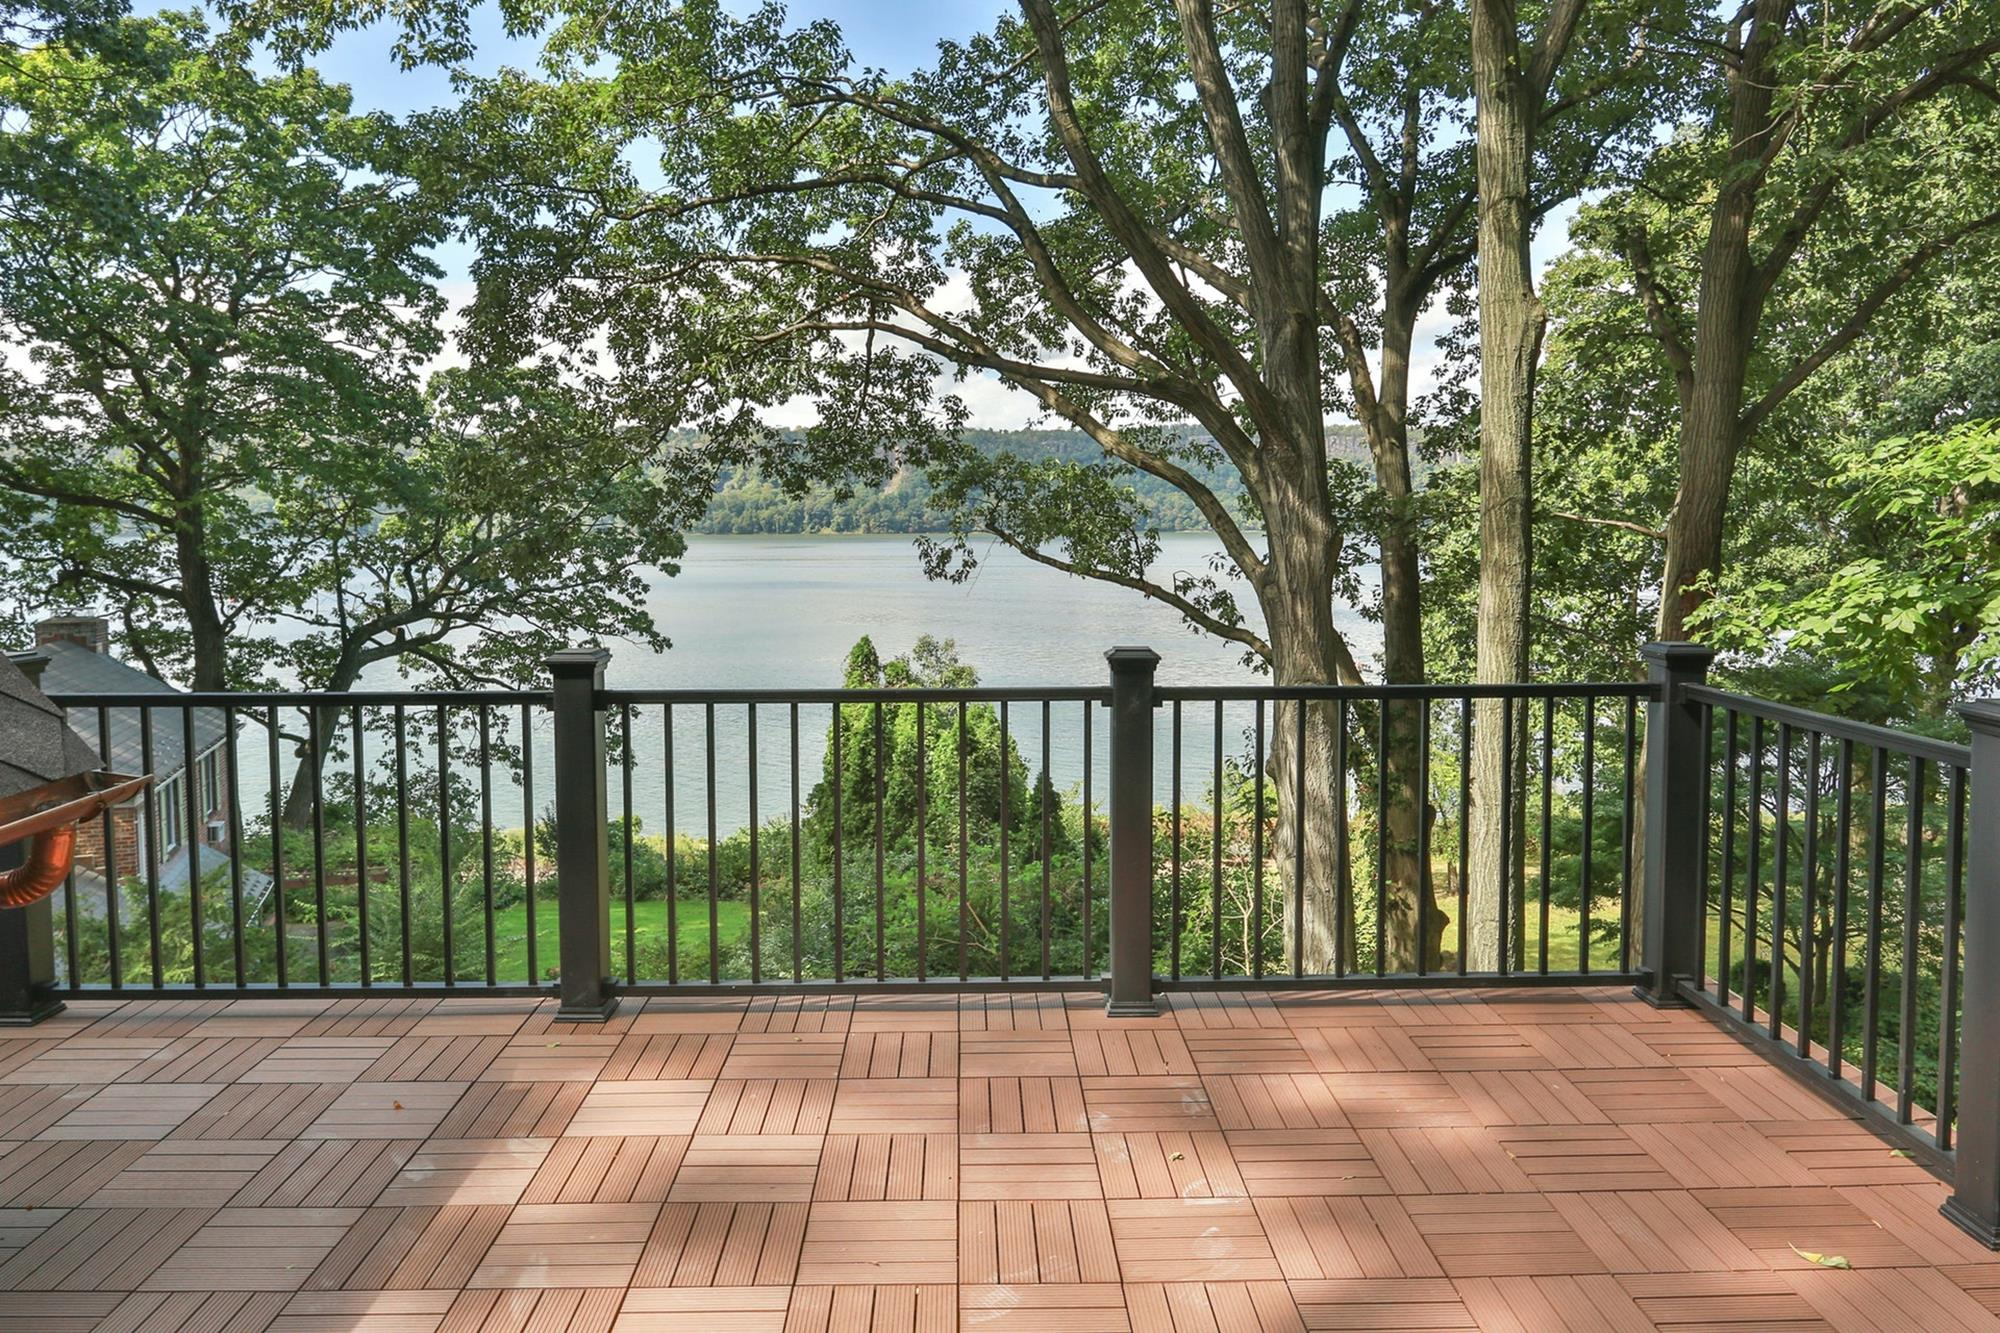 ESTATE AREA: Newly Built 4-Bd. Shingle-Style House w/ Decks & Majestic River Views on Private Cul-de-Sac